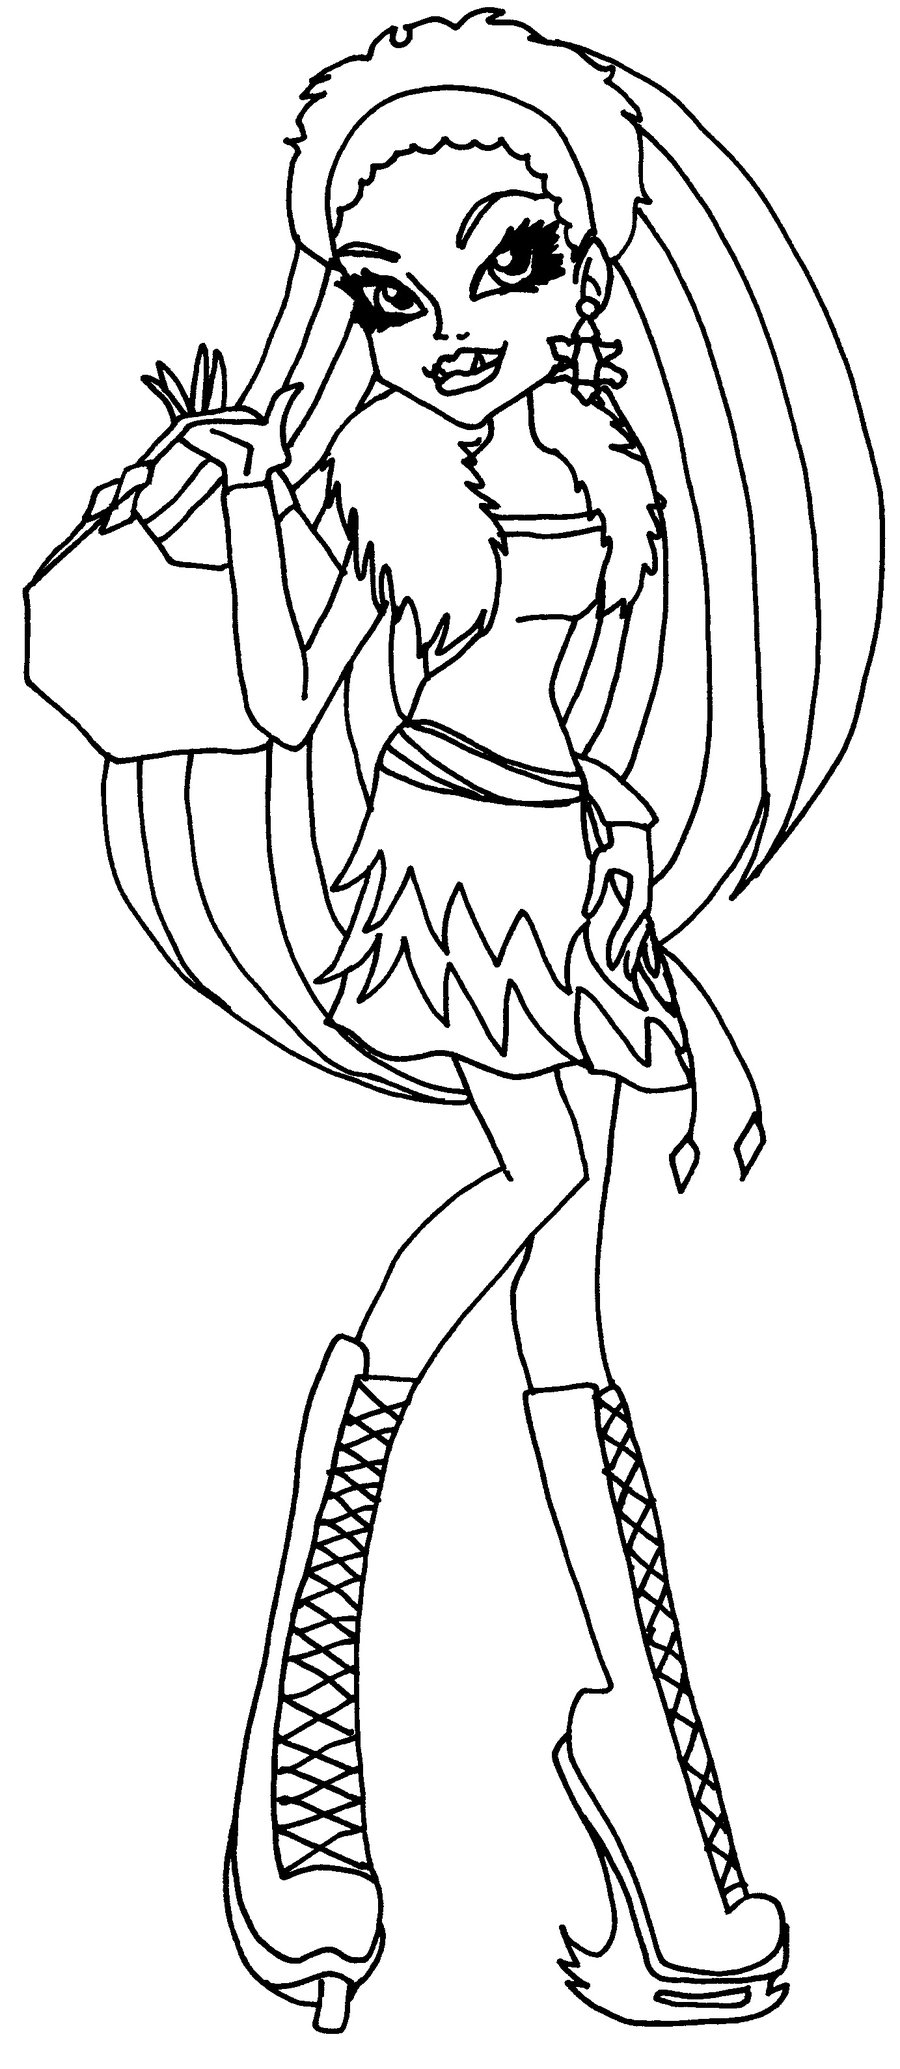 Tout les coloriage monster high du monde - Dessin monster ...